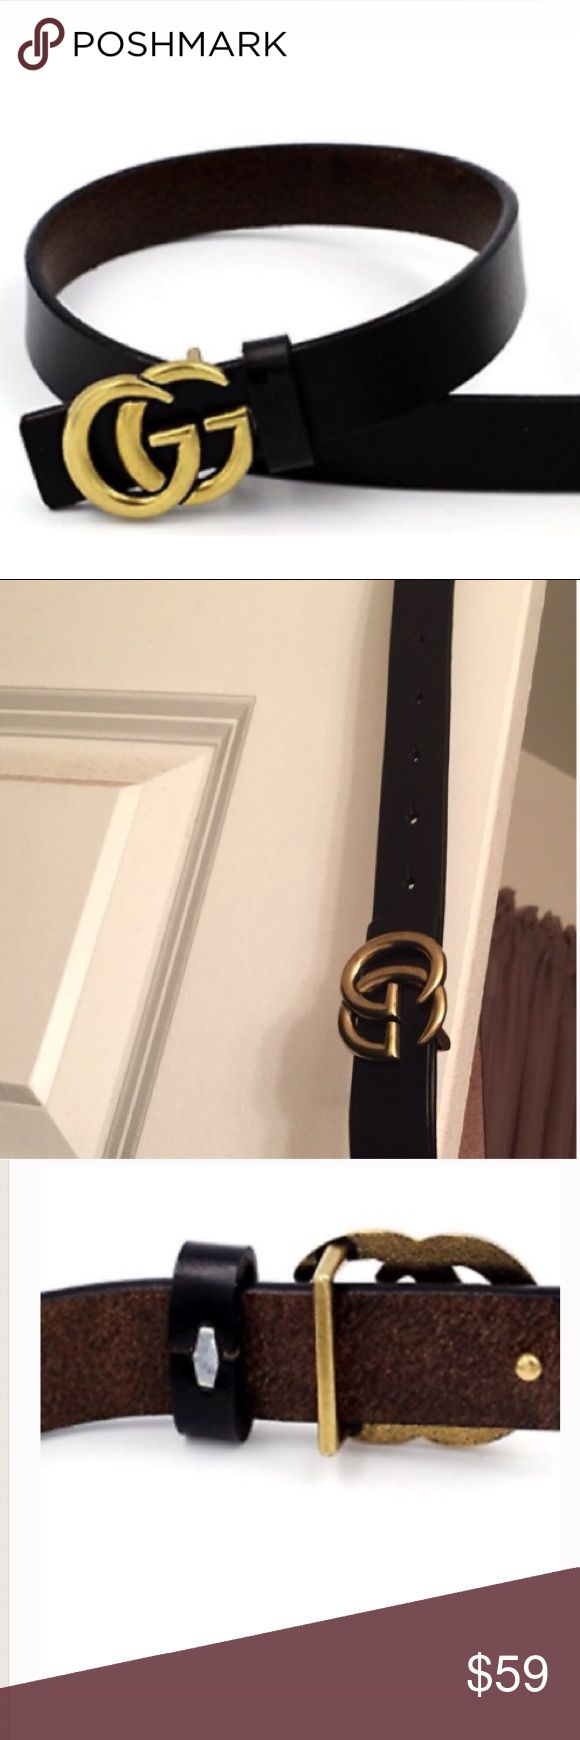 Popular Letter G Thin Belt Genuine leather 0.9in belt (small buckle) not medium not large / brand new without tags /Not Aut! Yu will receive brand new belt not belt in wearing in pictures!!! Gucci Accessories Belts